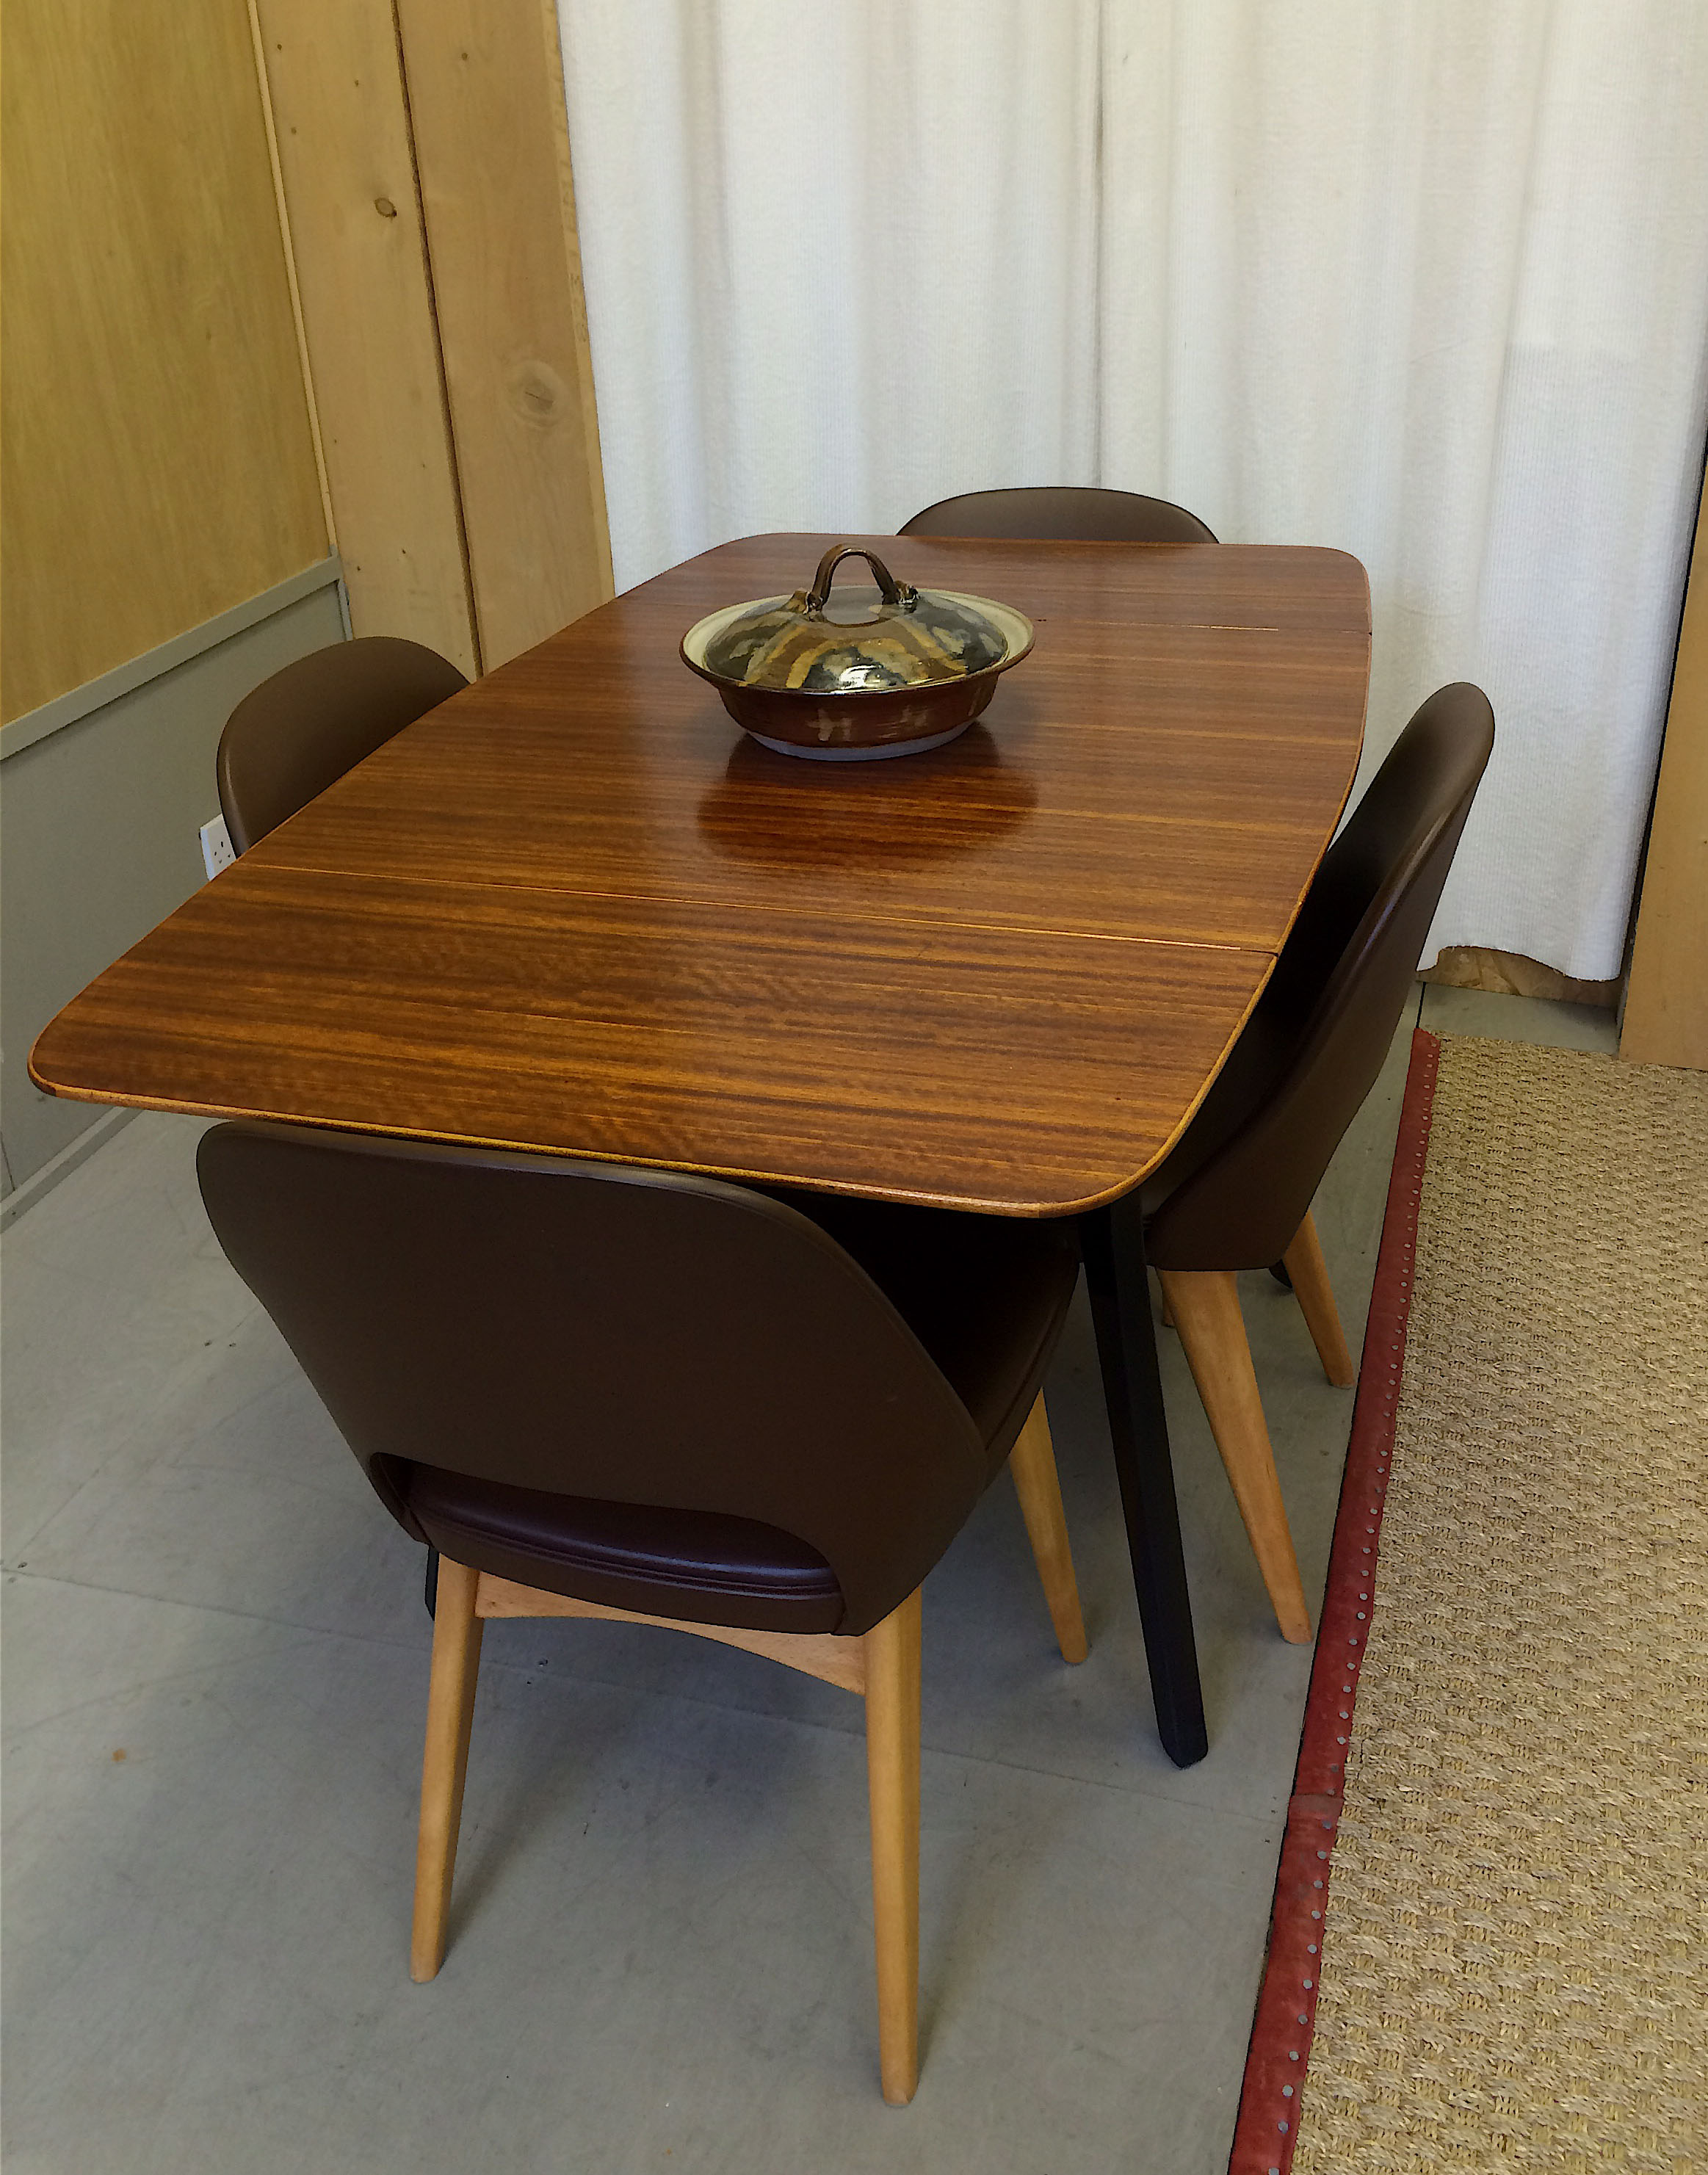 gbad design room retro 1950s g plan dining table drop leaf 1